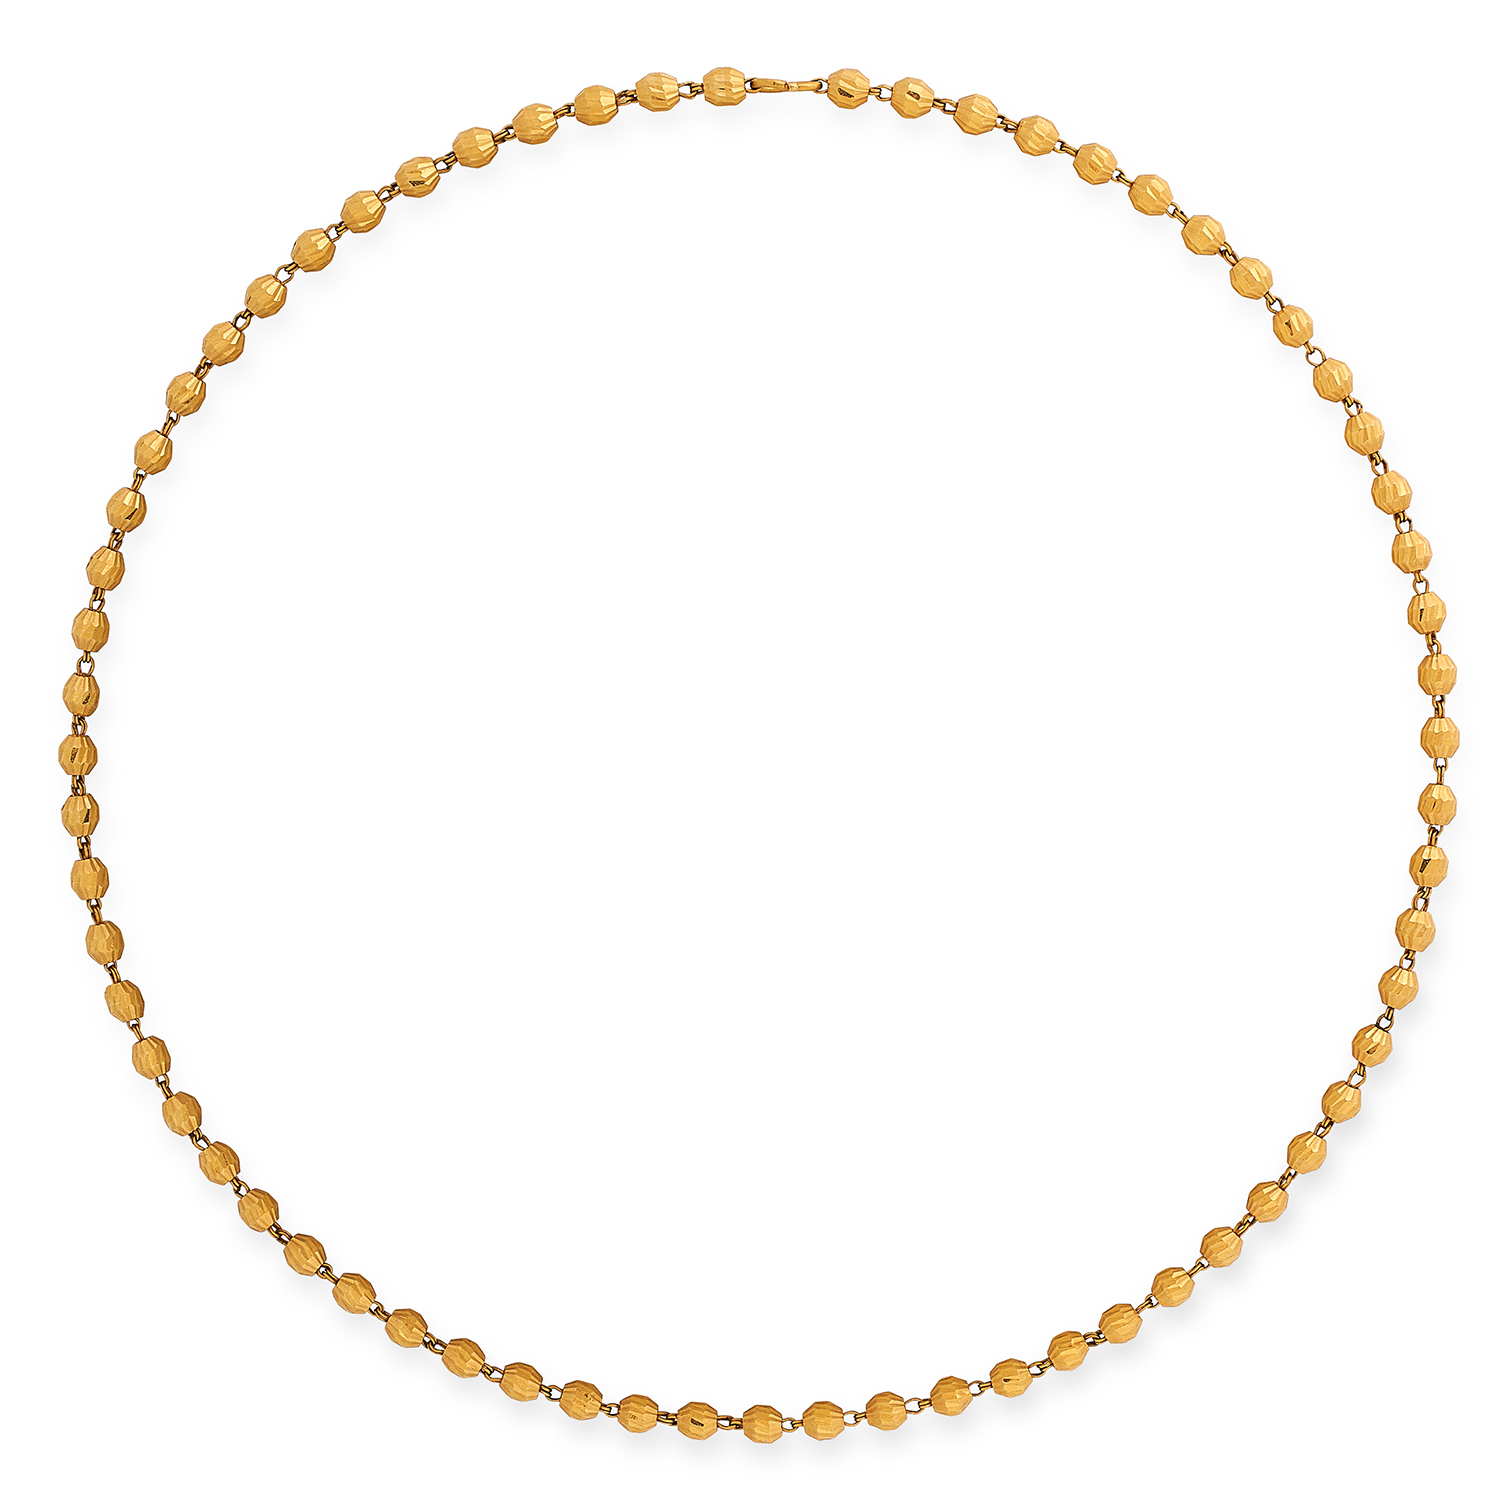 GOLD BEAD NECKLACE comprising of a single row of textured gold beads, 50cm, 20.5g.